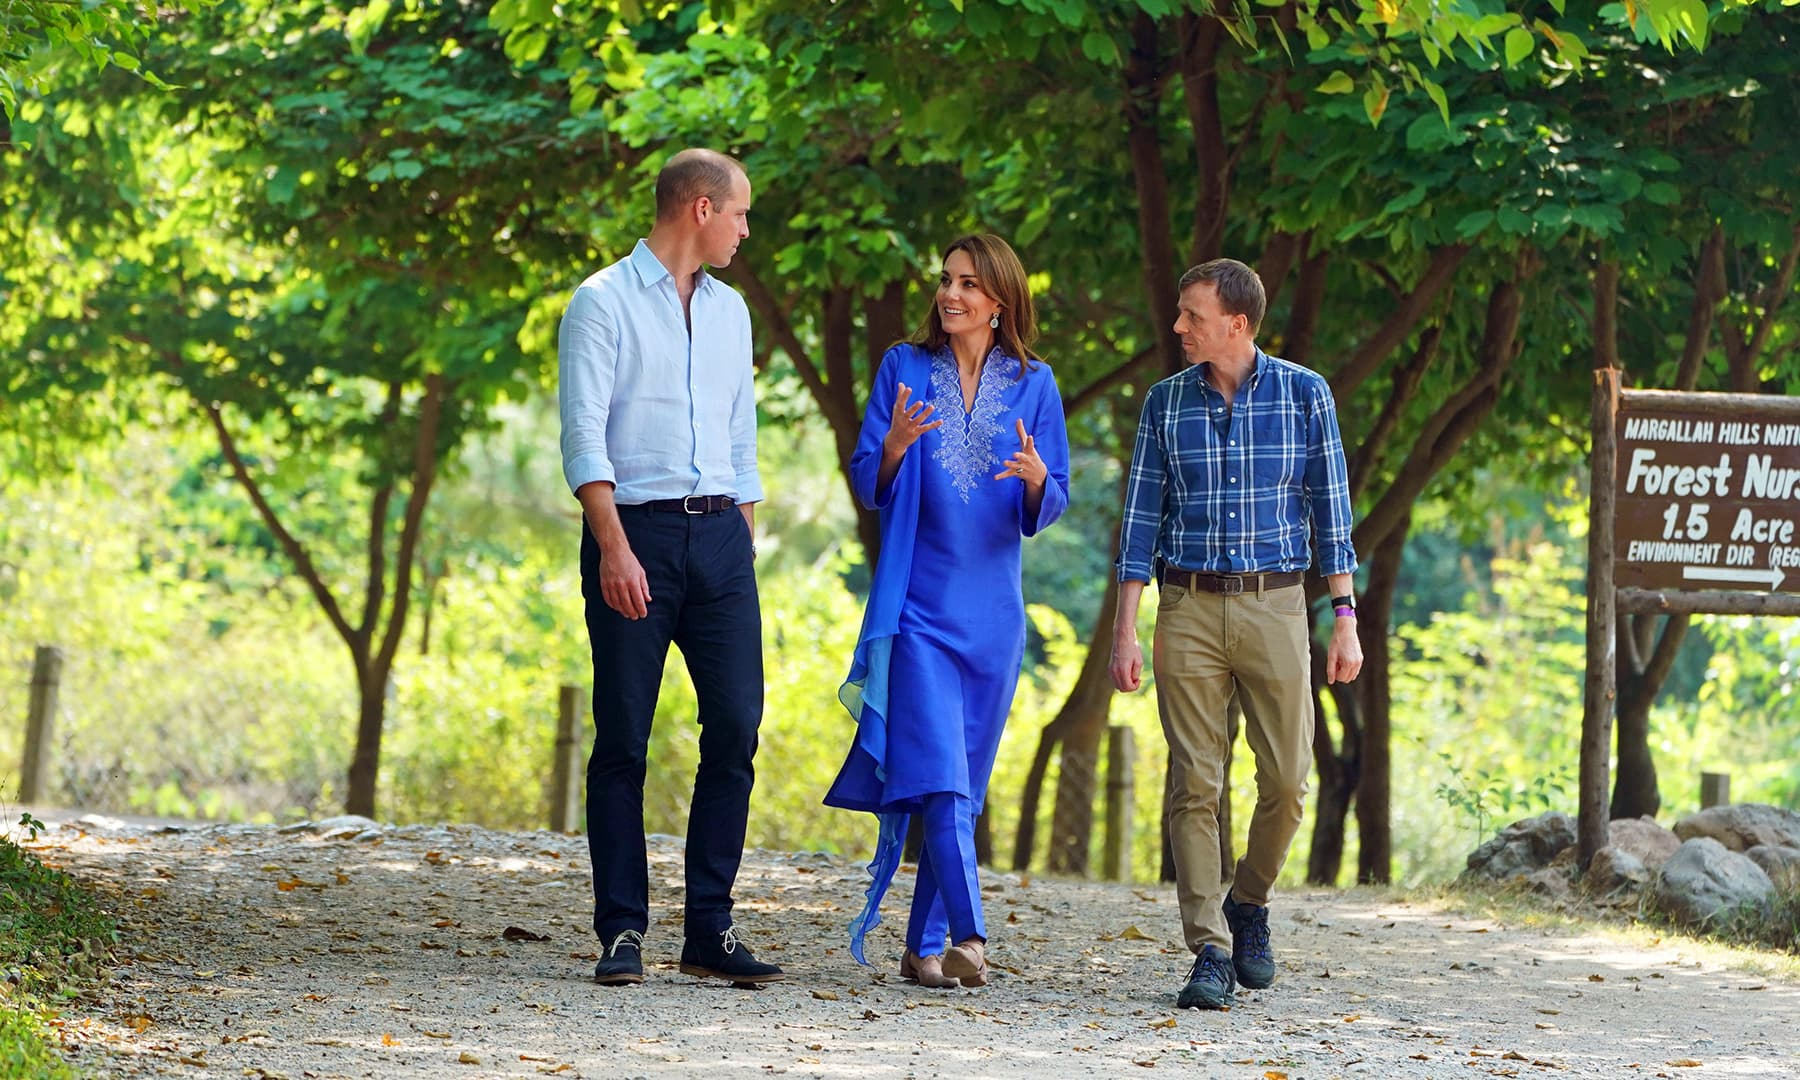 Prince William and Catherine, Duchess of Cambridge walk with an unidentified man during a visit to the Margalla Hills in Islamabad, October 15. — Reuters